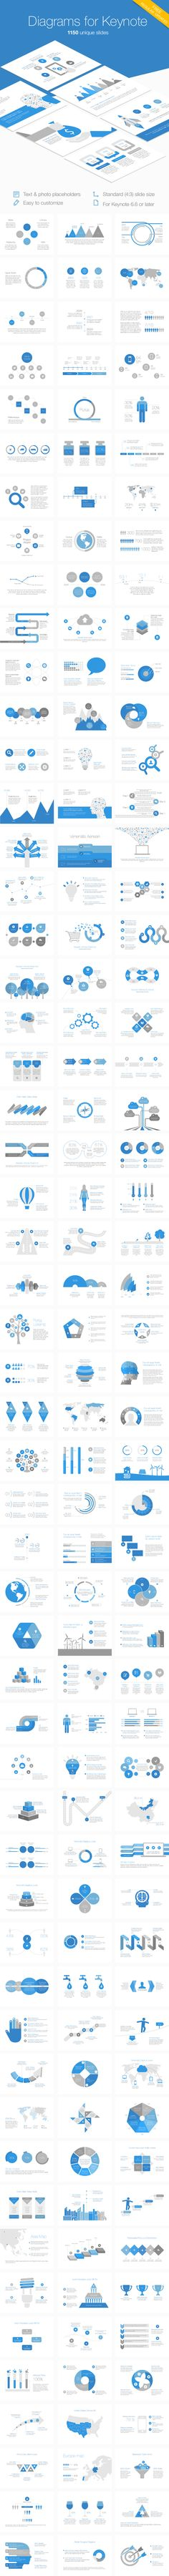 Buy Diagrams for Keynote by Jumsoft on GraphicRiver. The diagram set for Keynote offers a collection of 1700 slides with sleek and easily customizable data visualization . Diagram Design, Graph Design, Web Design, Chart Design, Design Basics, Keynote Presentation, Powerpoint Presentation Templates, Presentation Design, Keynote Template